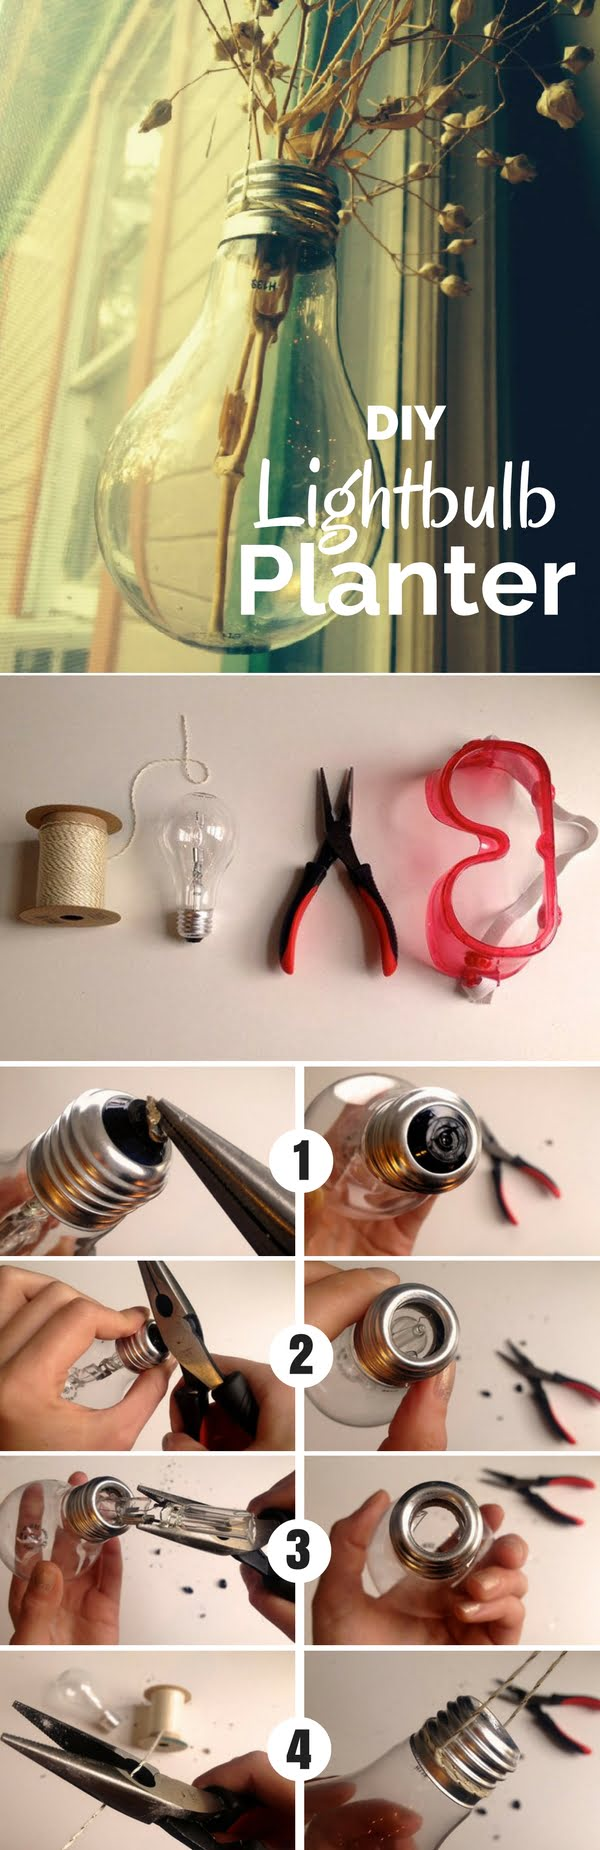 Check out this easy idea on how to make #DIY lightbulb planters for #apartments #homedecor #budget #dollarstore